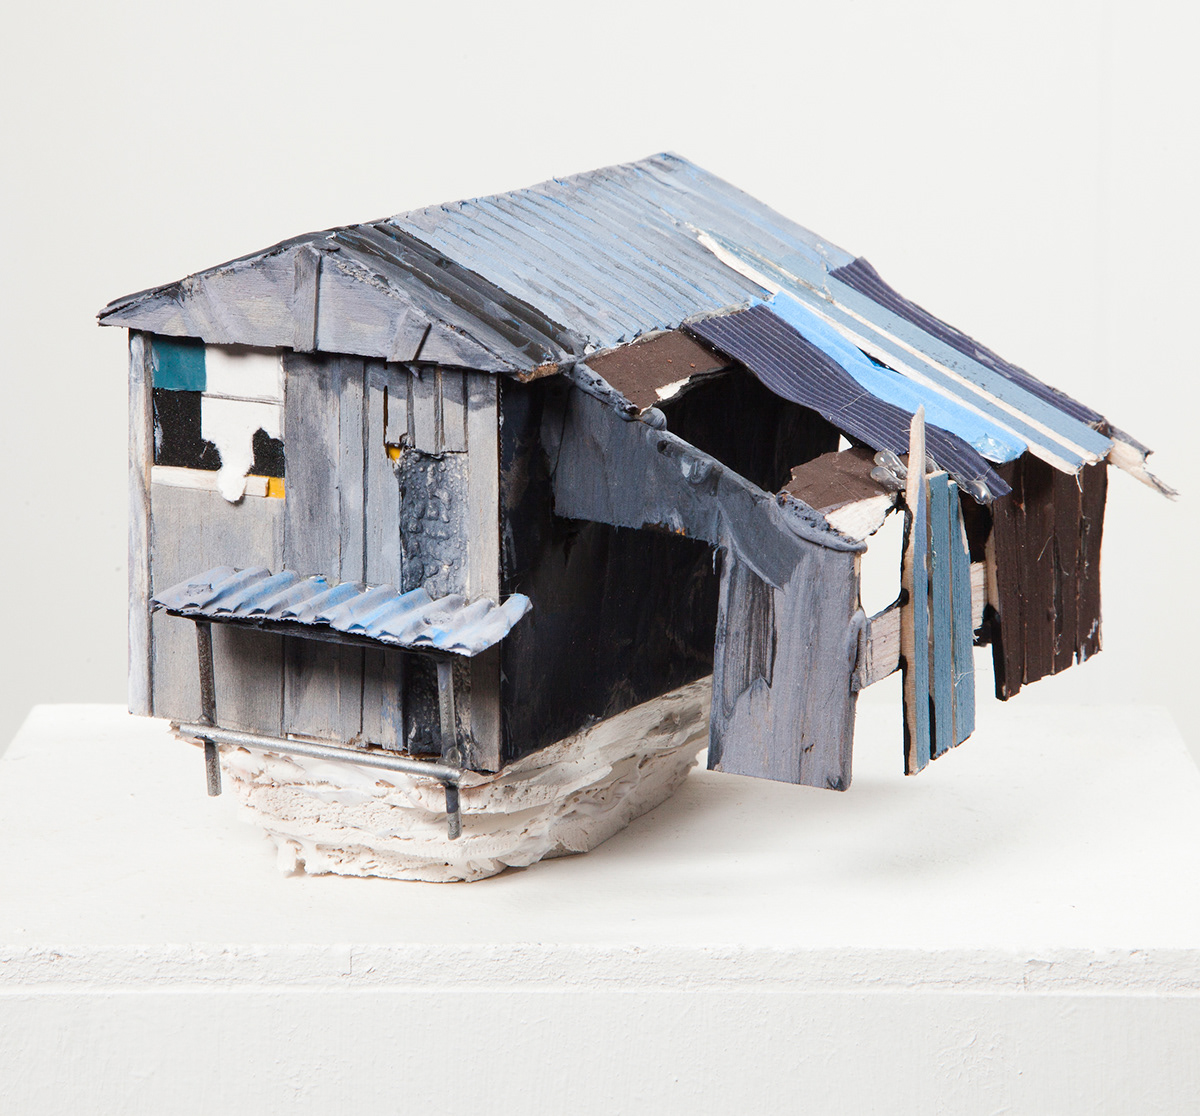 Sheds of Rochdale. Shed on Stilts (2013). Mixed media. Photo by David Bennett